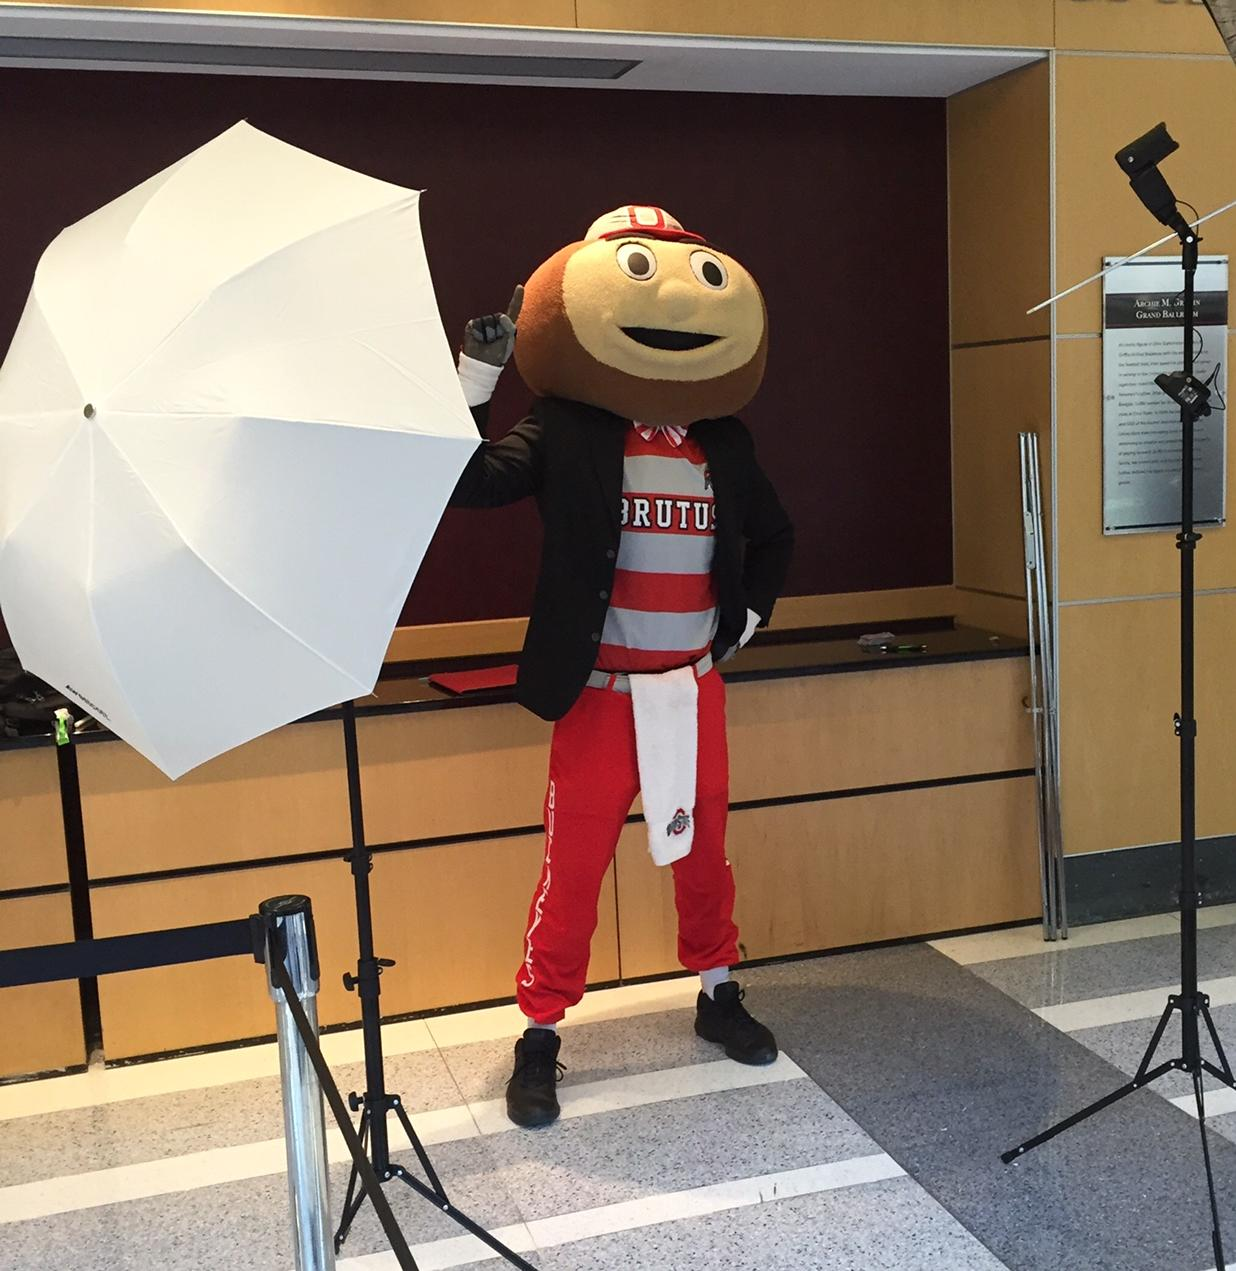 Brutus getting his professional headshot taken